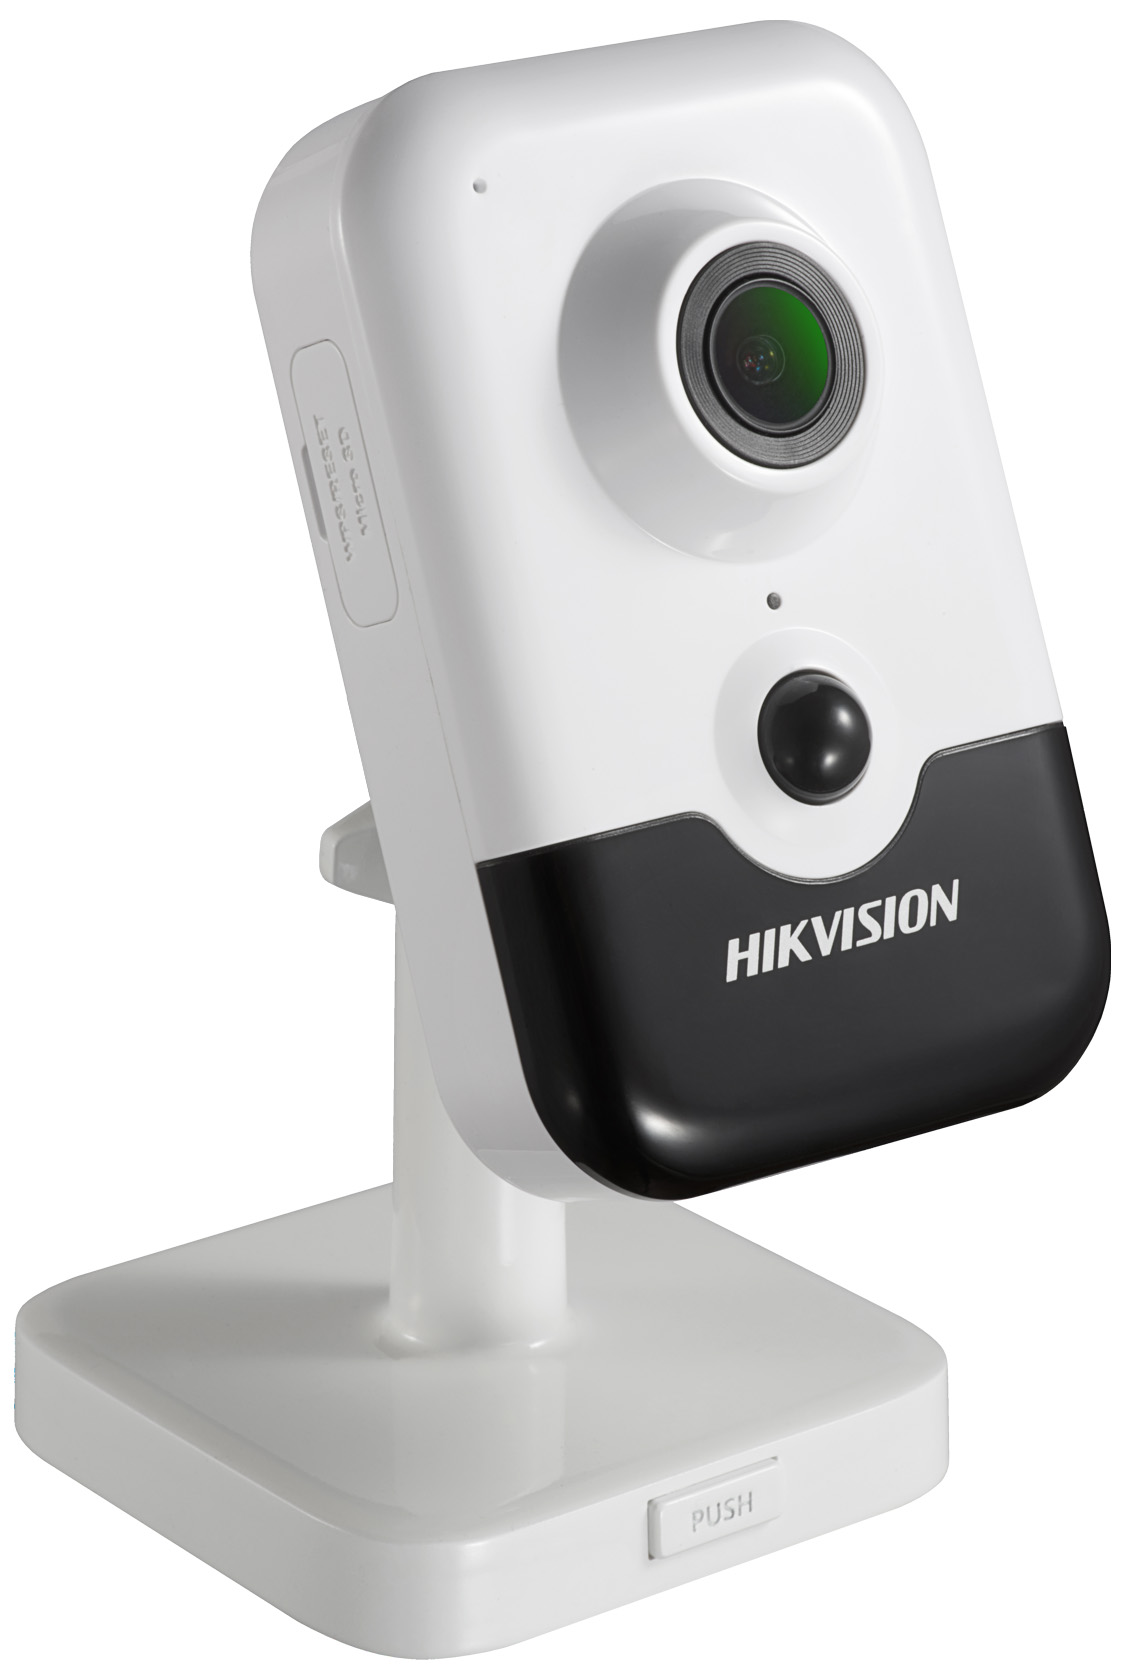 Hikvision DS-2CD2443G0-IW 2.8mm